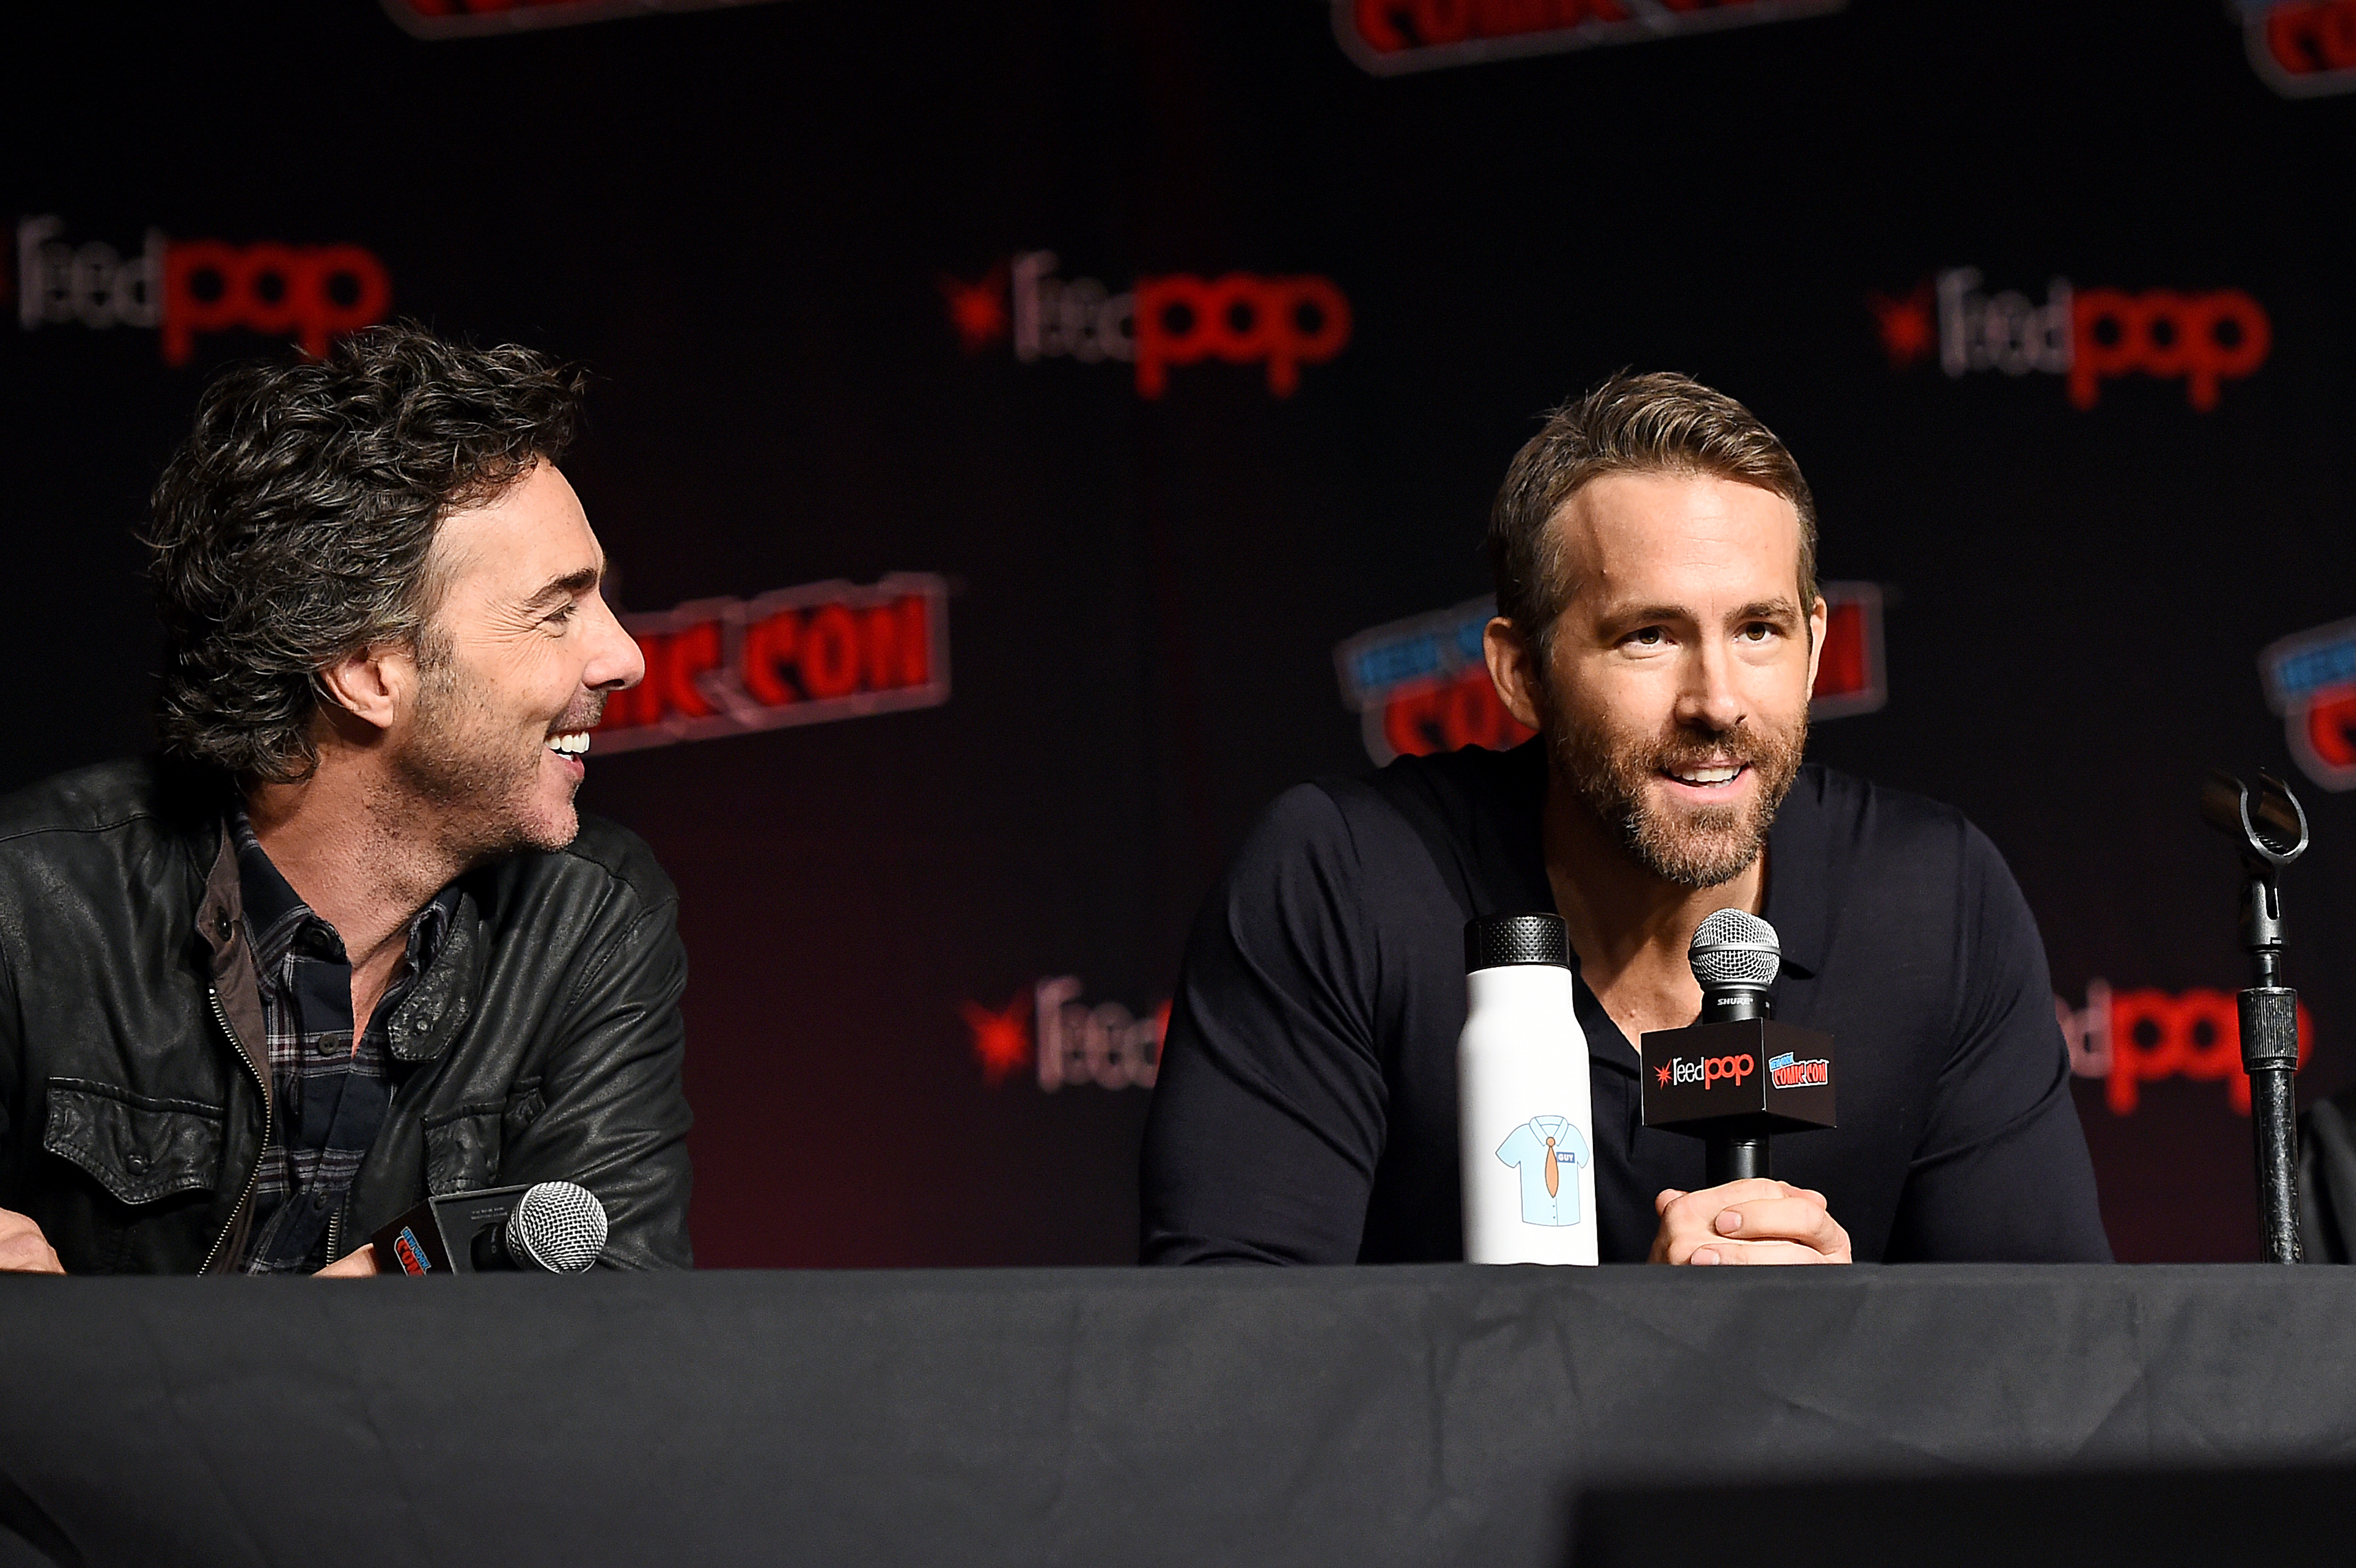 Ryan Reynolds and Shawn Levy at an event for Free Guy